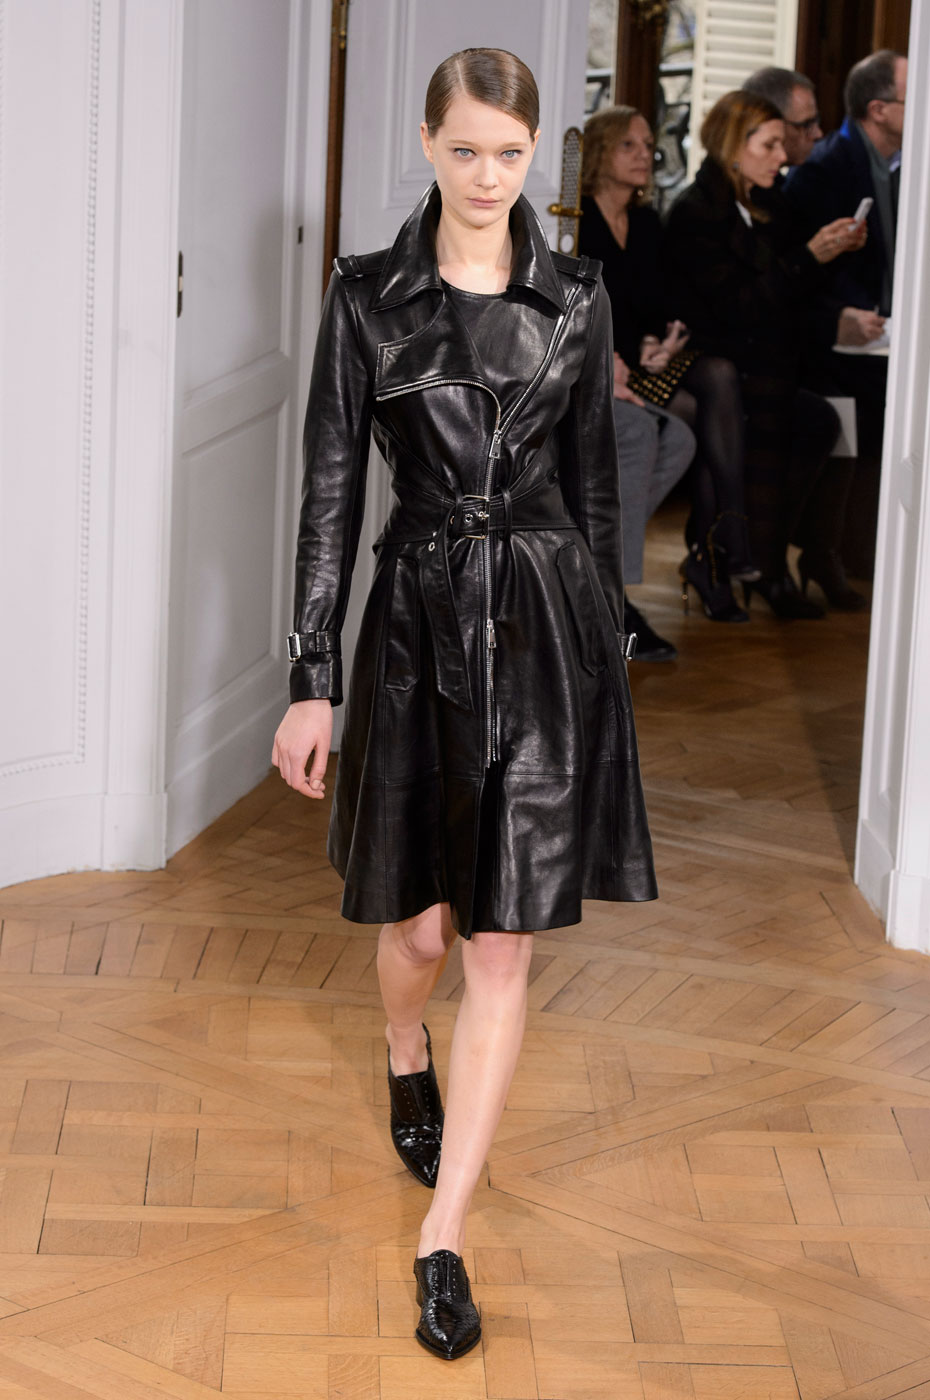 Bouchra-Jarrar-fashion-runway-show-haute-couture-paris-spring-summer-2015-the-impression-05